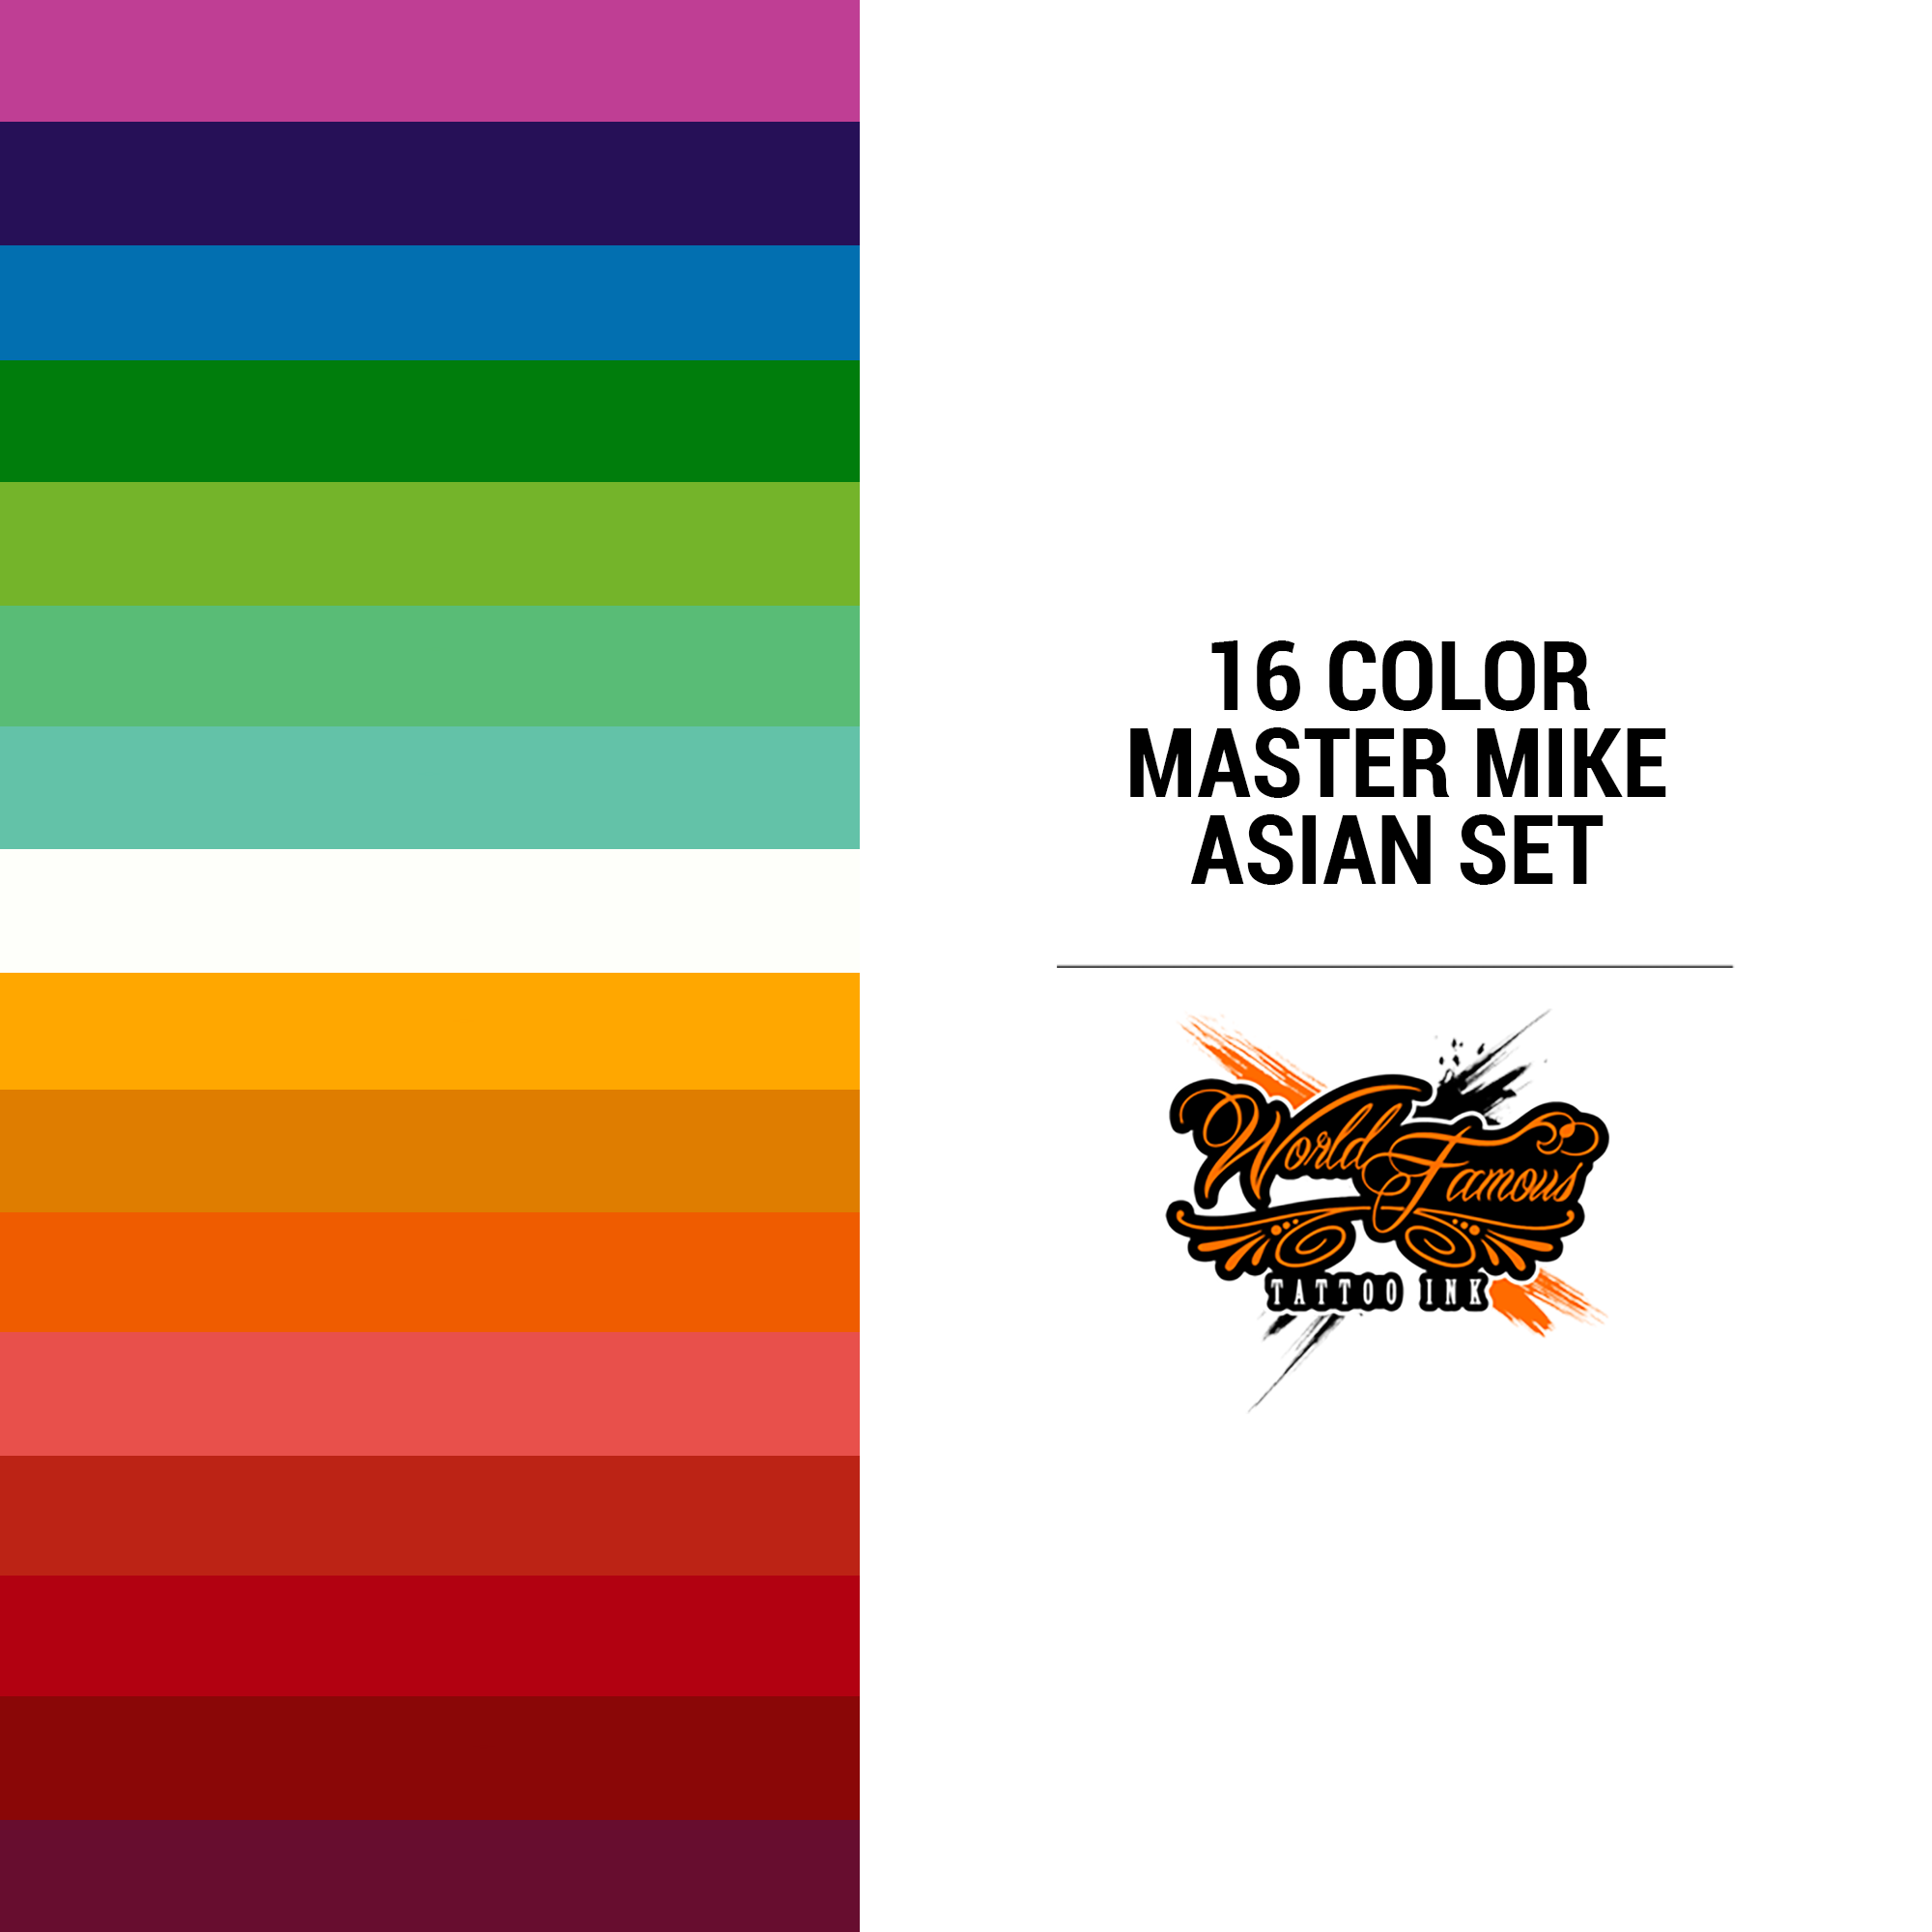 WF 16 Color Master Mike Asian Set